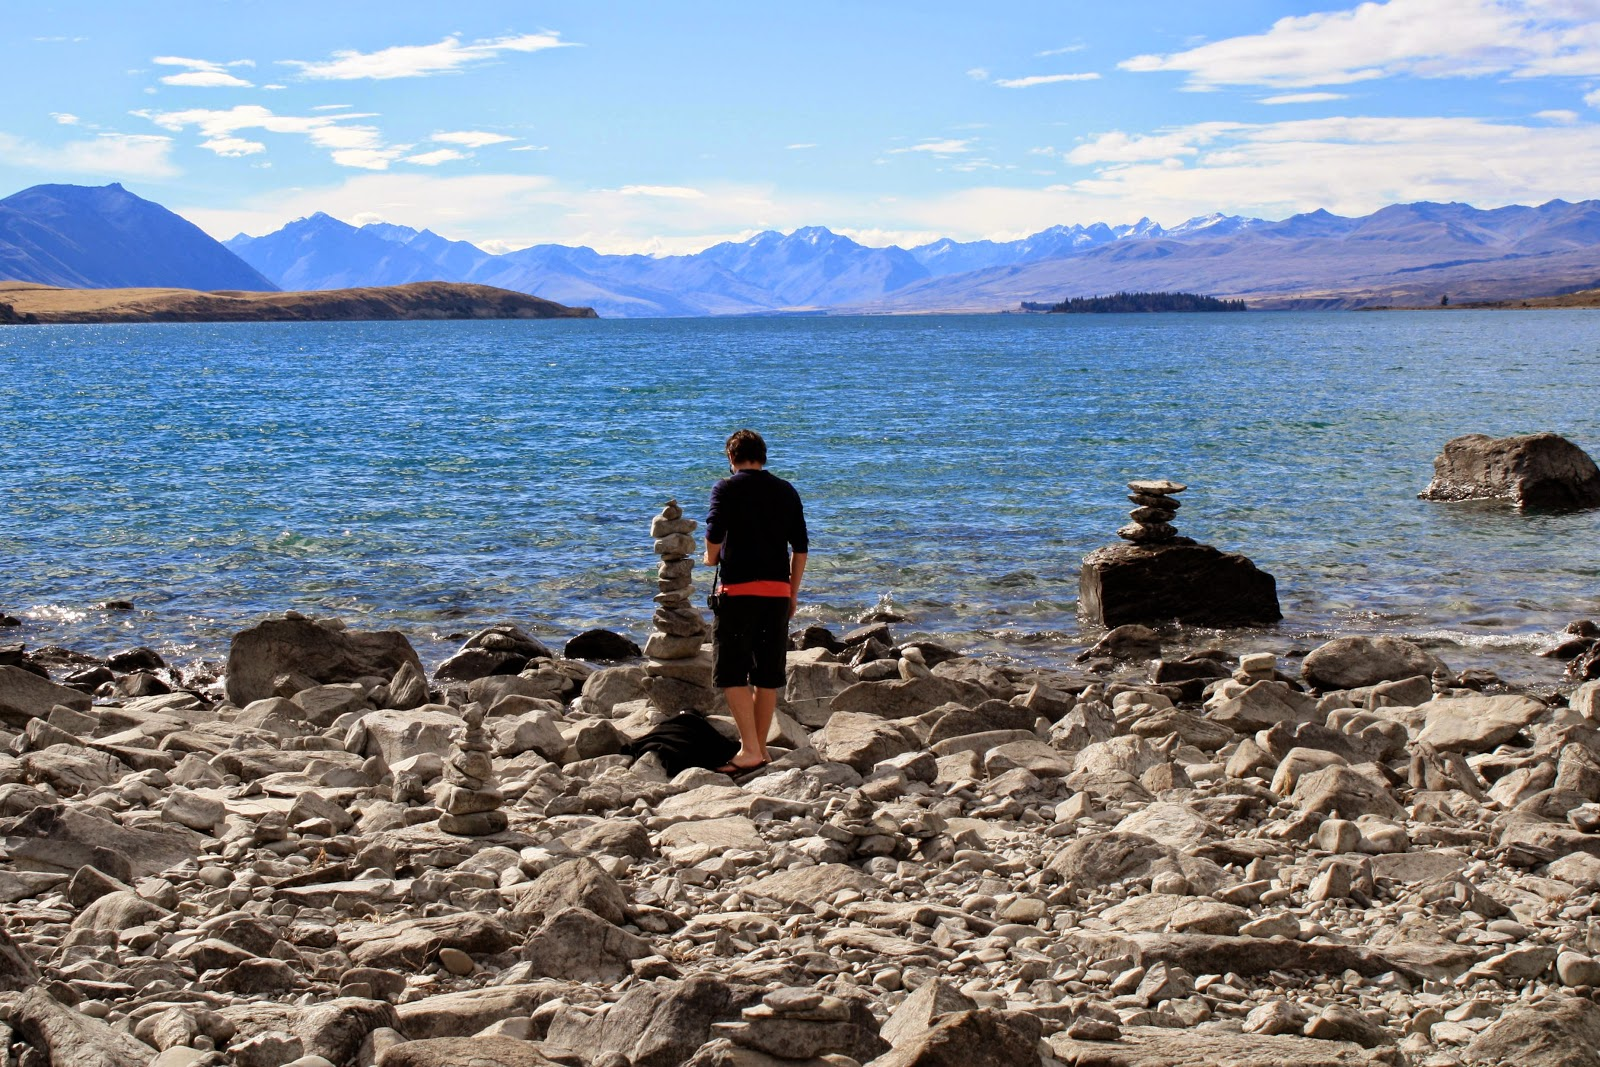 Jesse standing next to a pile of stacked stones by Lake Tekapo, in the South Island of New Zealand.